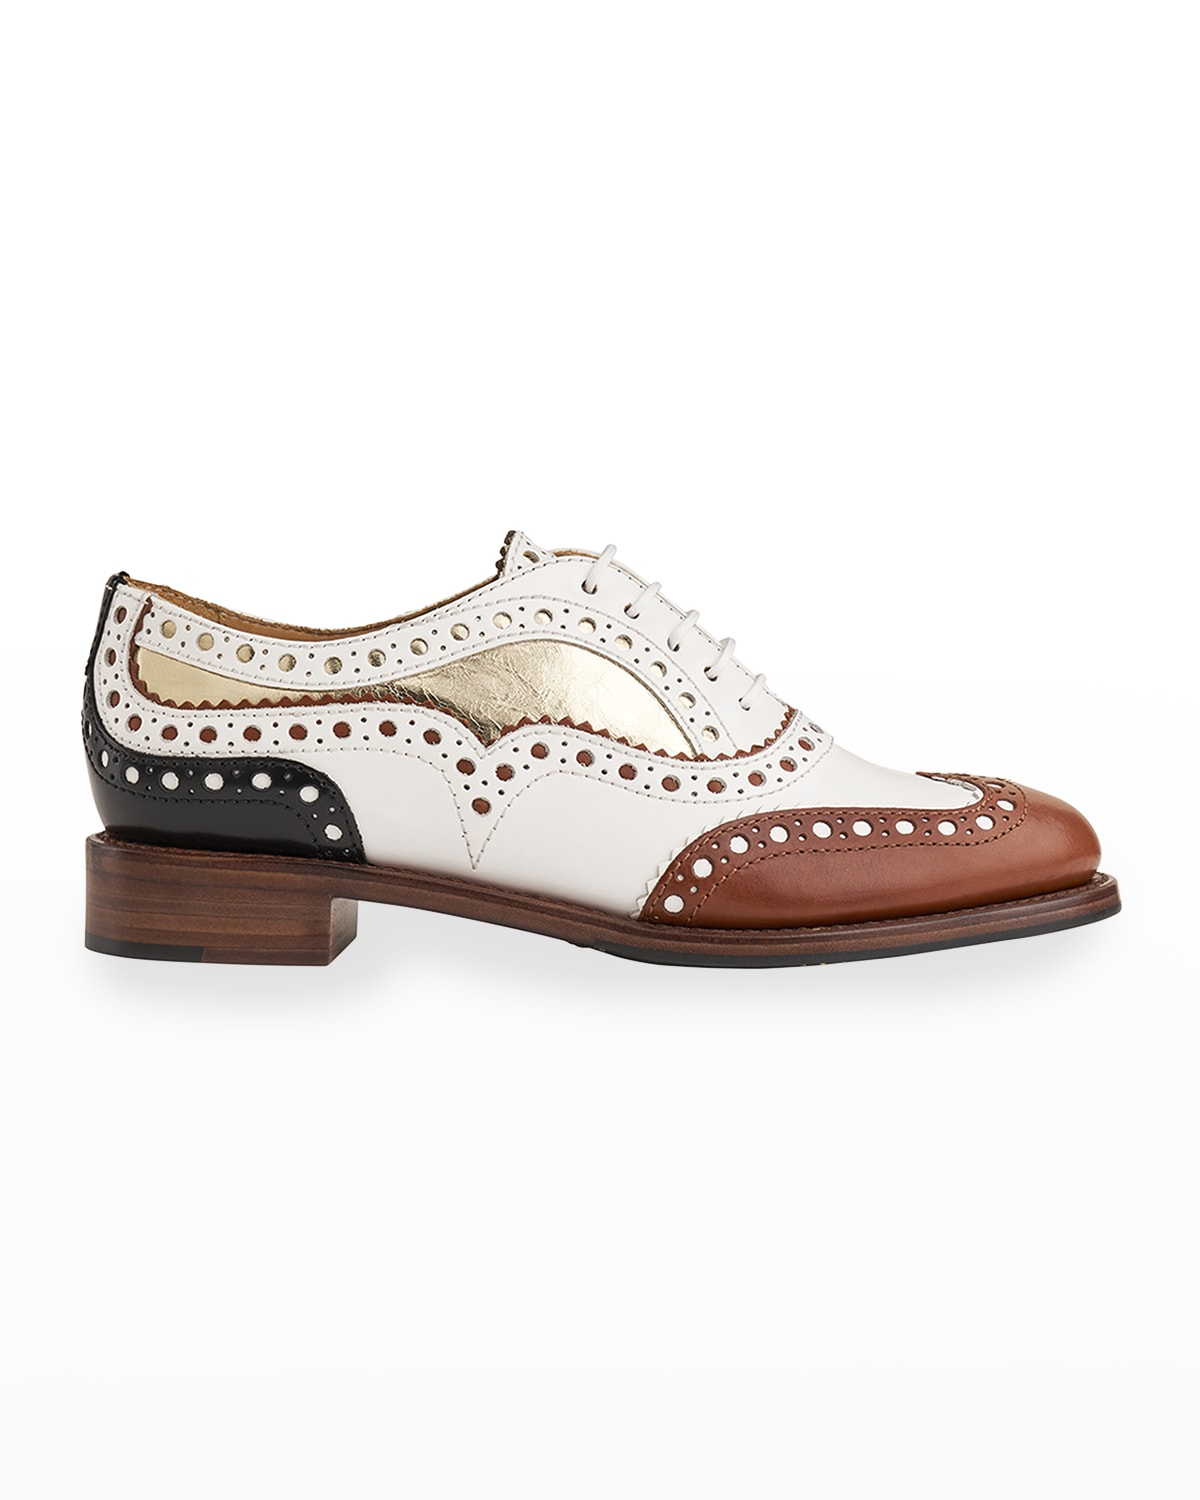 Mr. Doubt Colorblock Leather Oxford Loafers